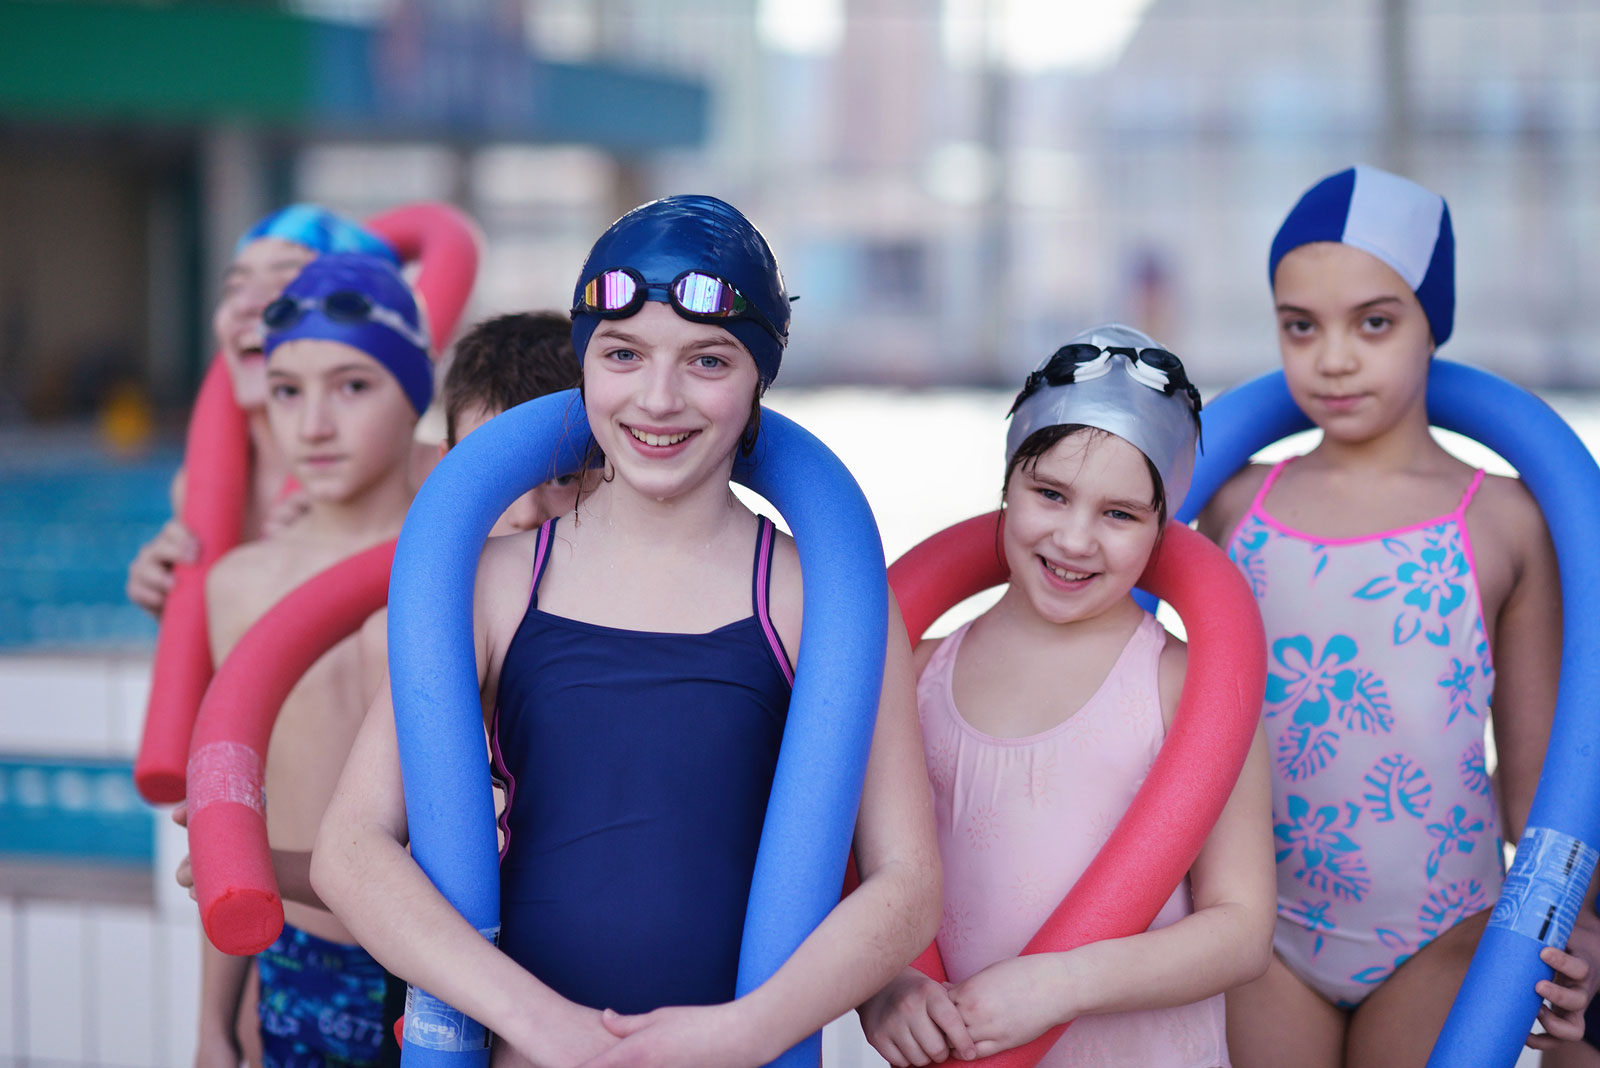 Enroll your children in swimming lessons.